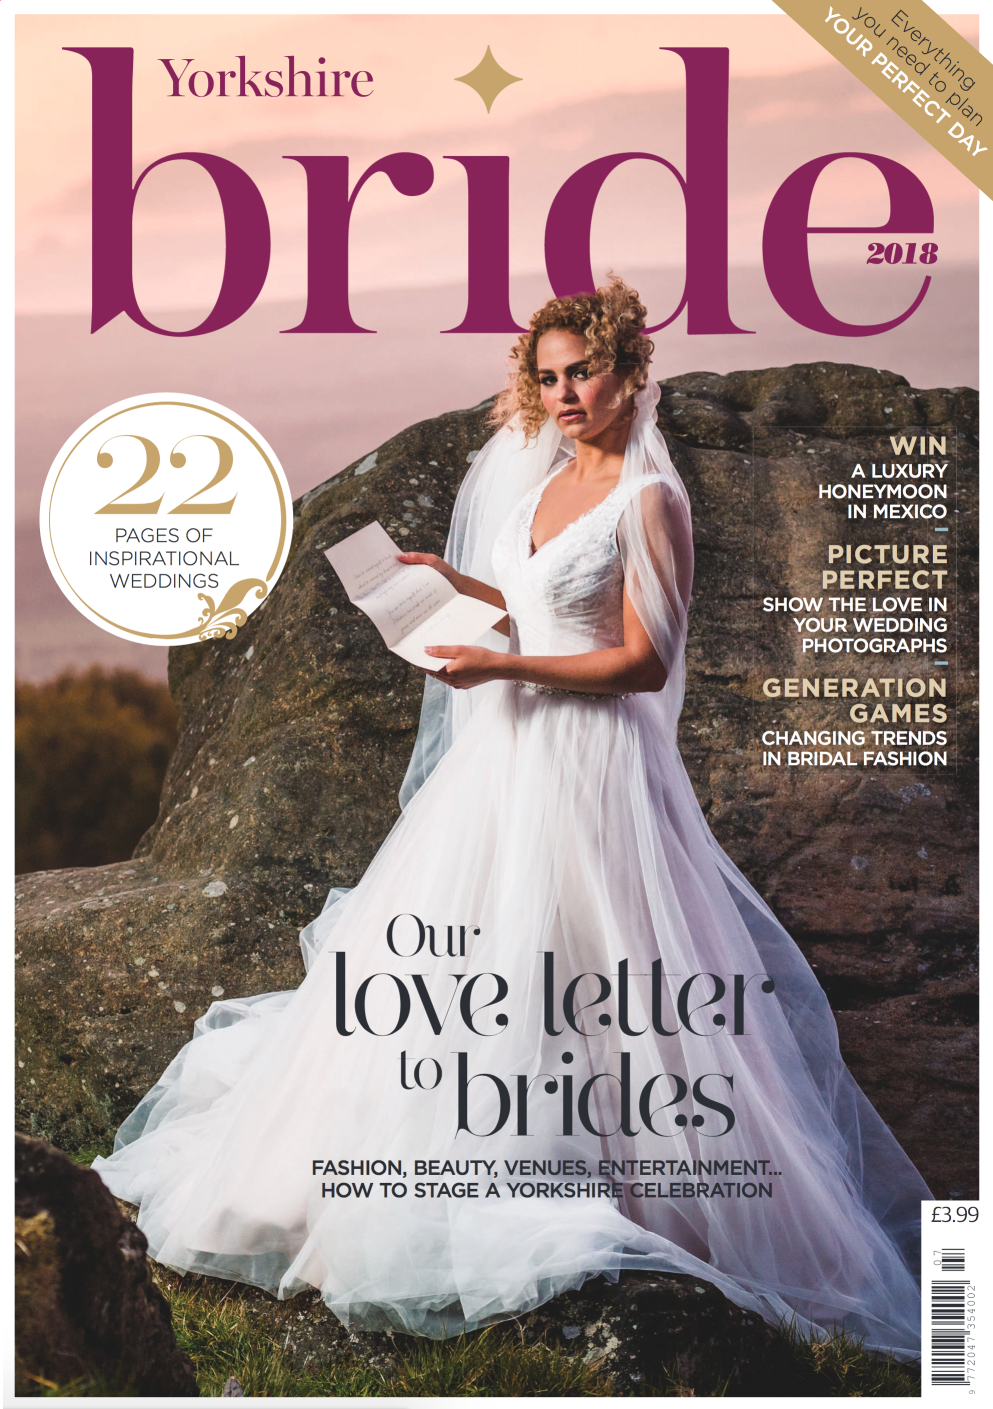 Yorkshire Bride Magazine Cover